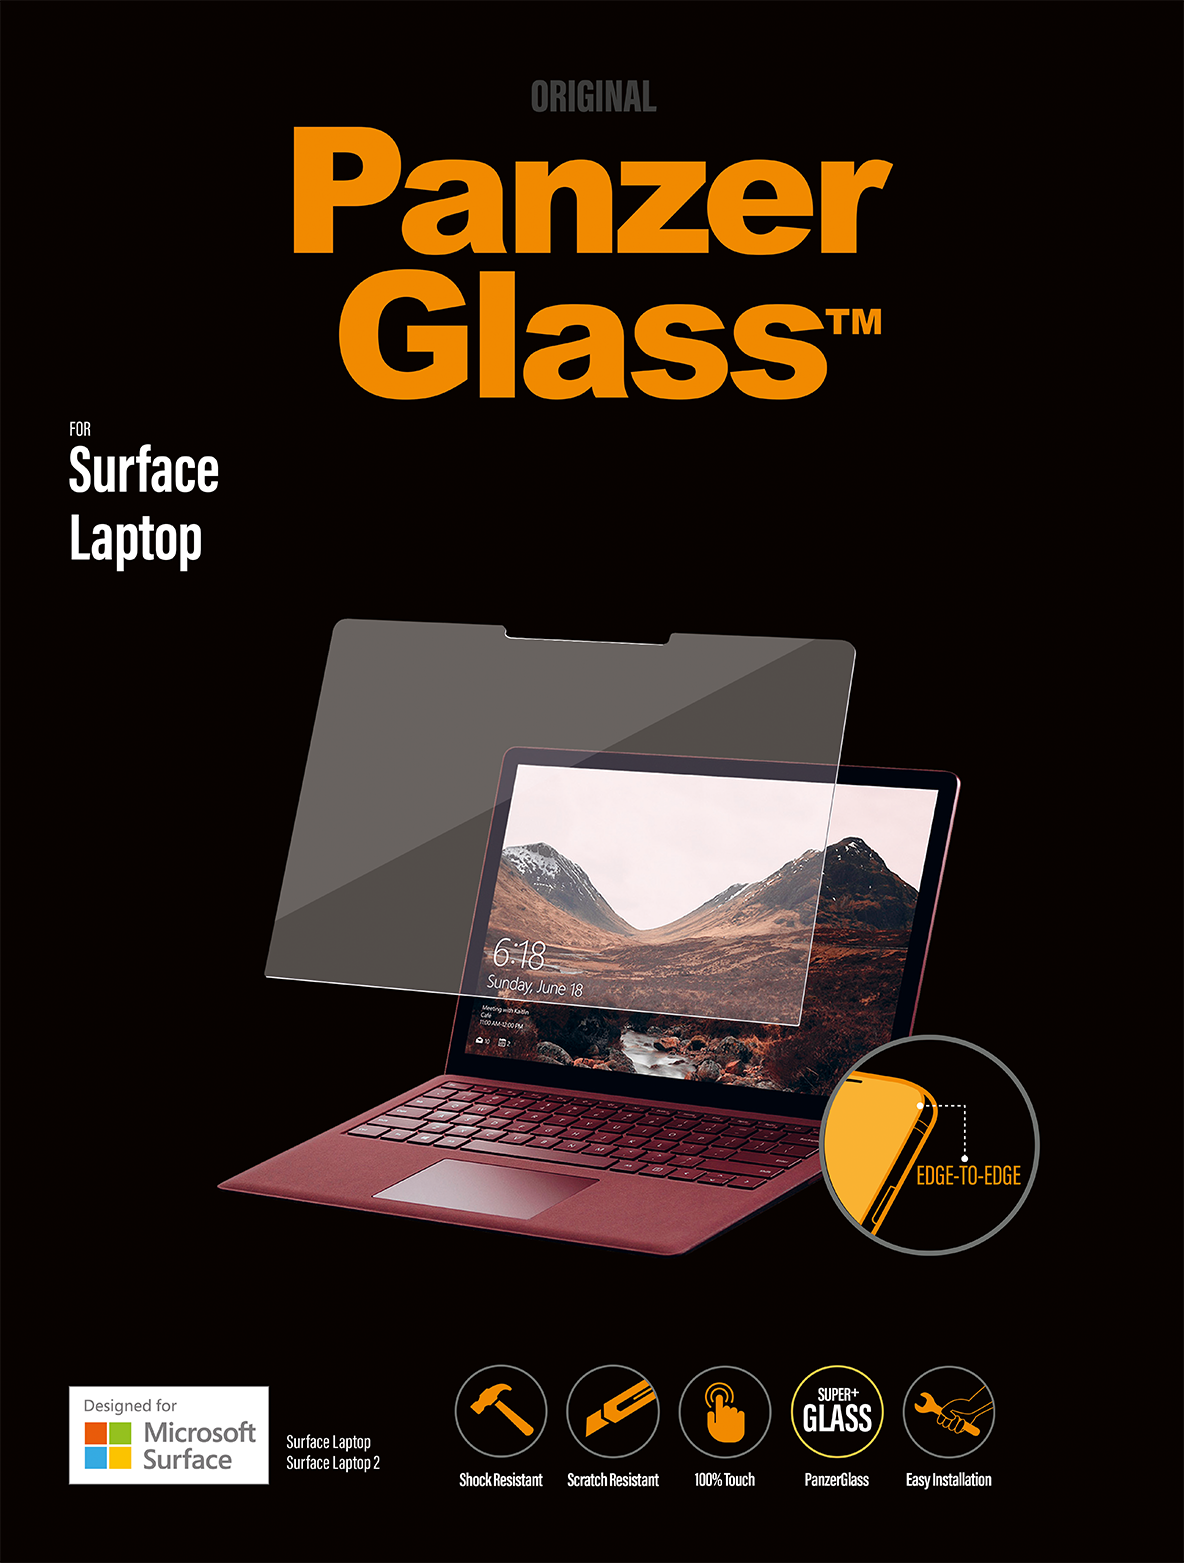 RE2Ojth?ver=01ed - PanzerGlass Microsoft Surface Laptop Screen Protector 13""""